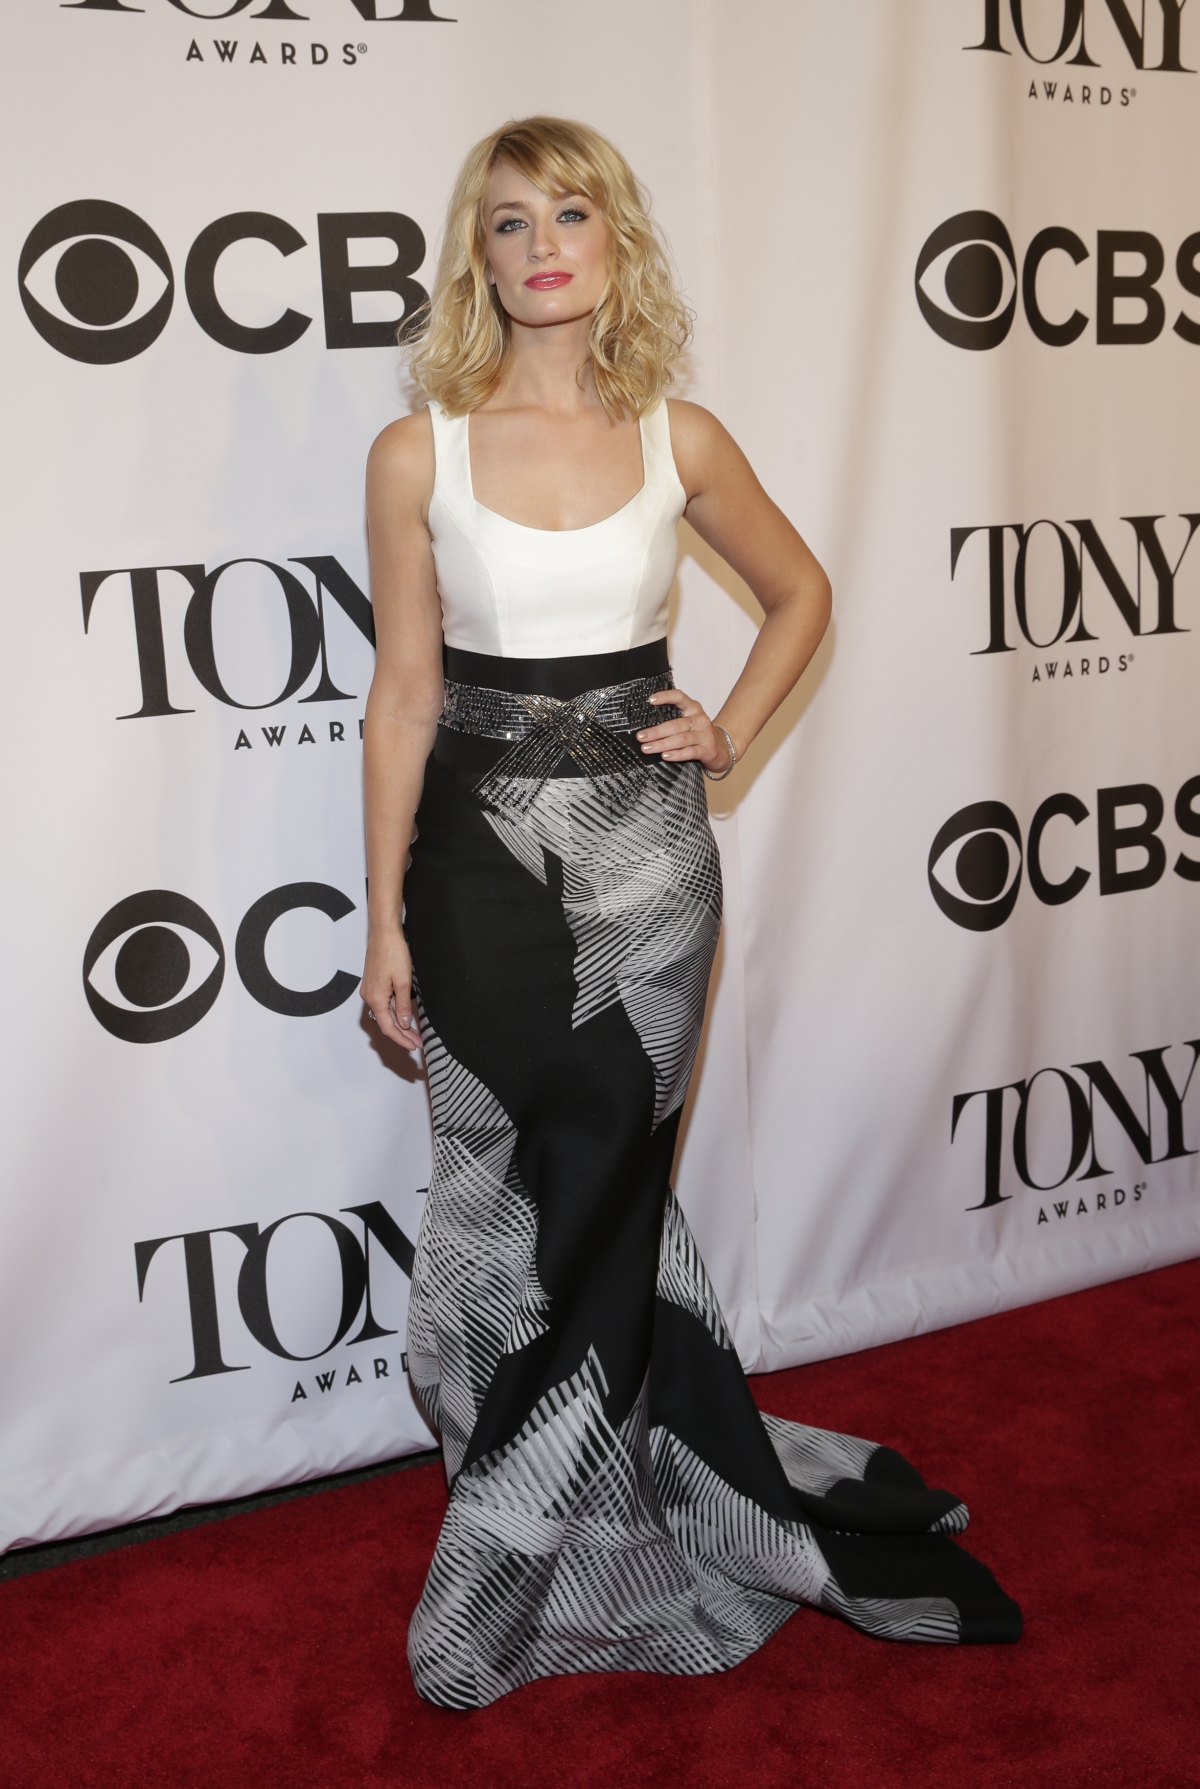 Actress Beth Behrs arrives for the American Theatre Wing's 68th annual Tony Awards at Radio City Music Hall in New York, June 8, 2014.